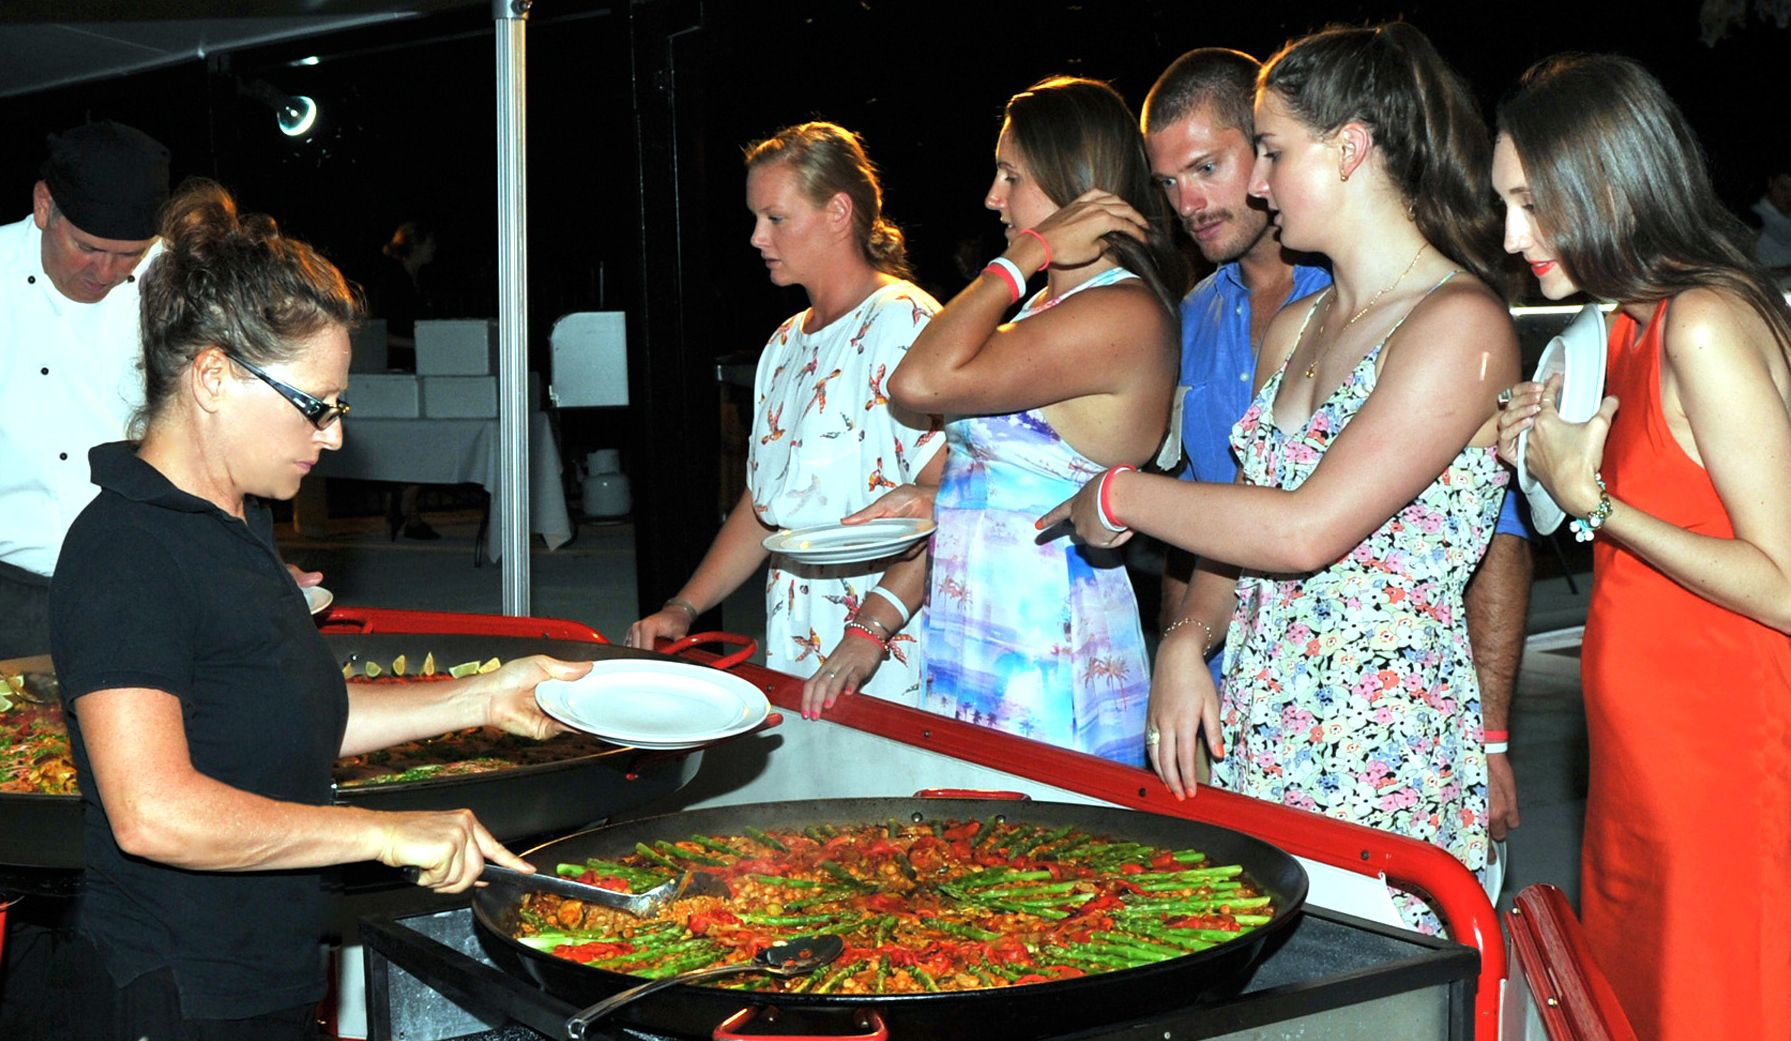 Vegetarian, seafood or meat paella?  Hmmm, difficult choice!